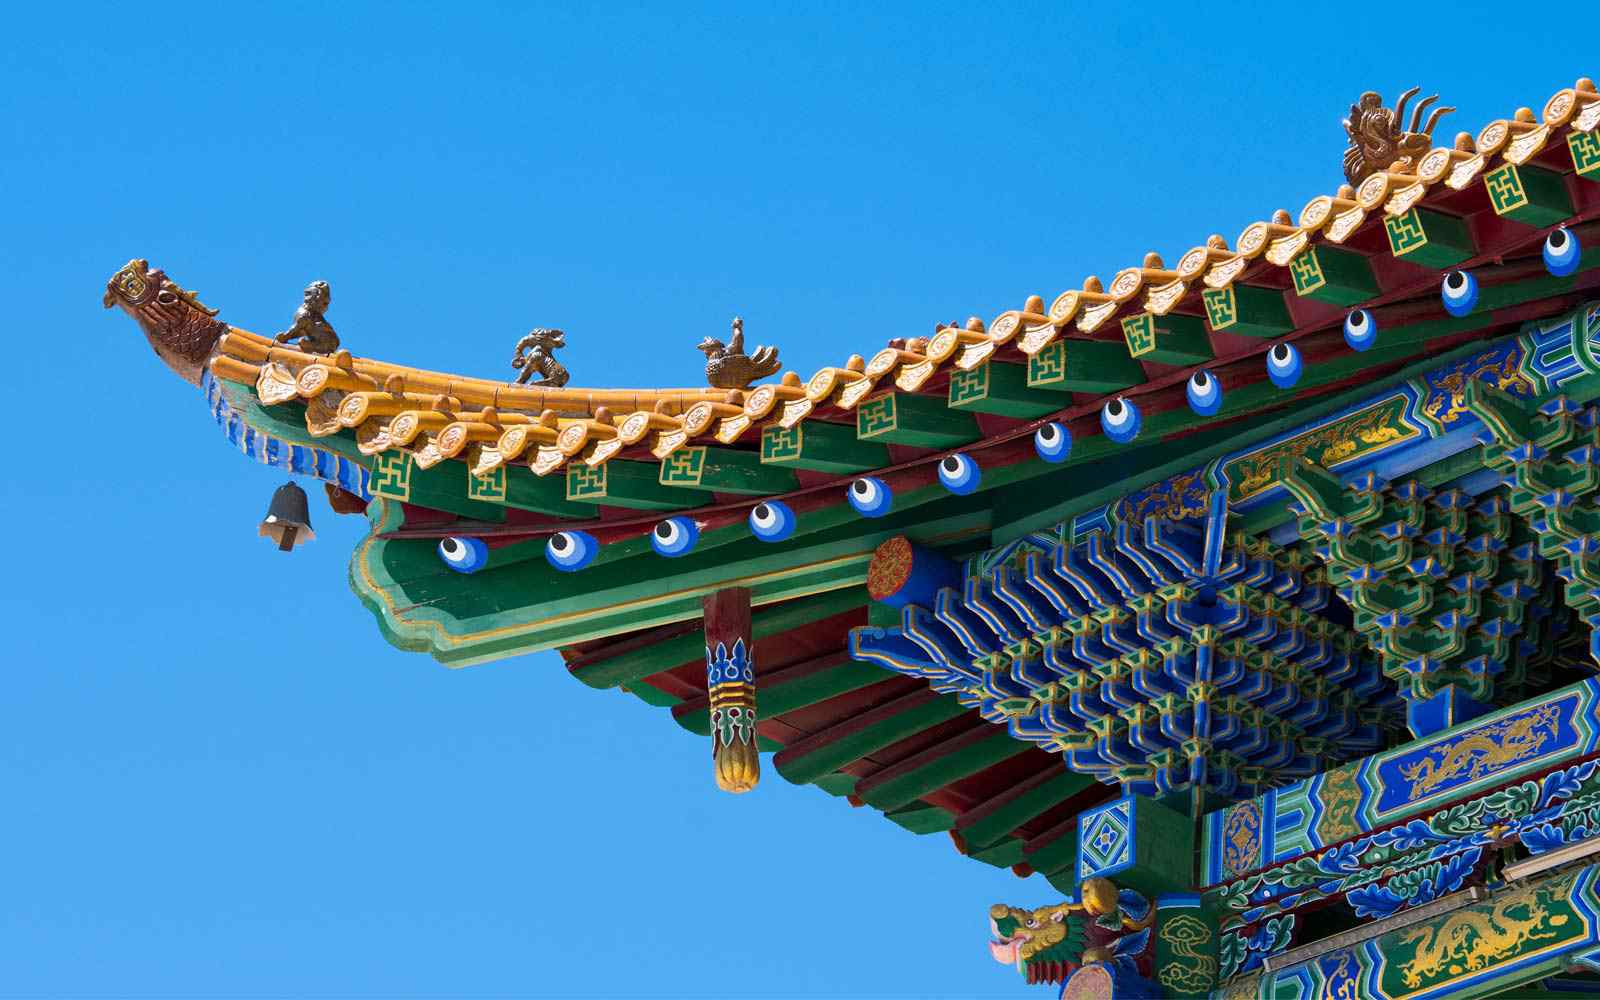 Close up of a building in Yuzhu China against a blue sky.